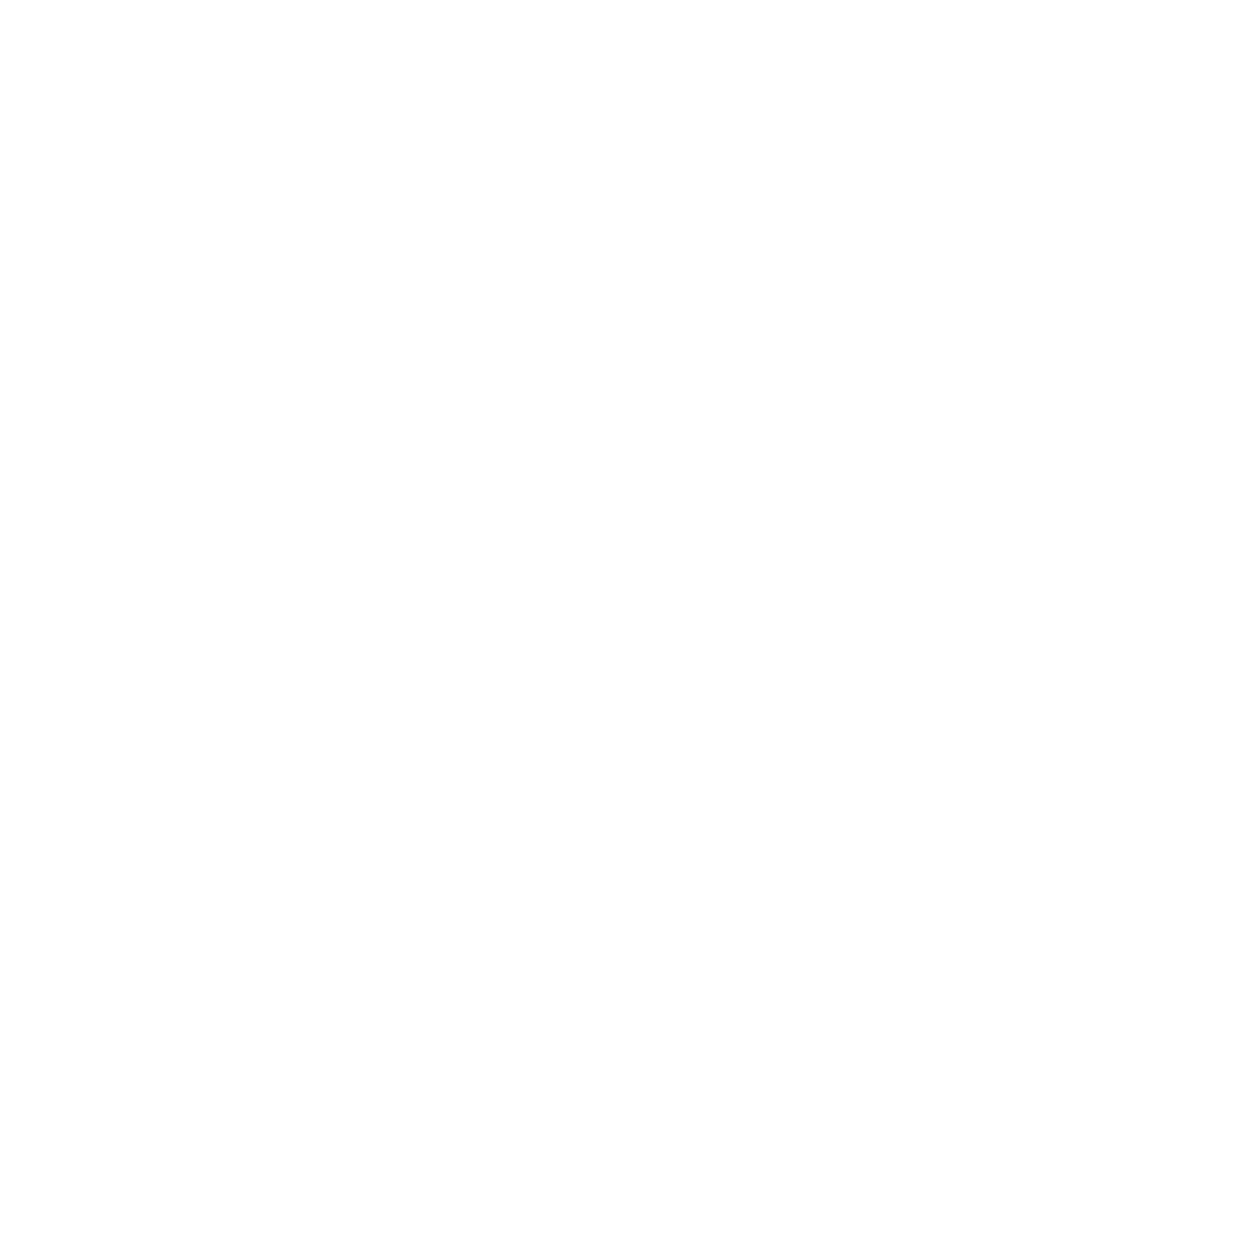 Hospital stay_icon_white